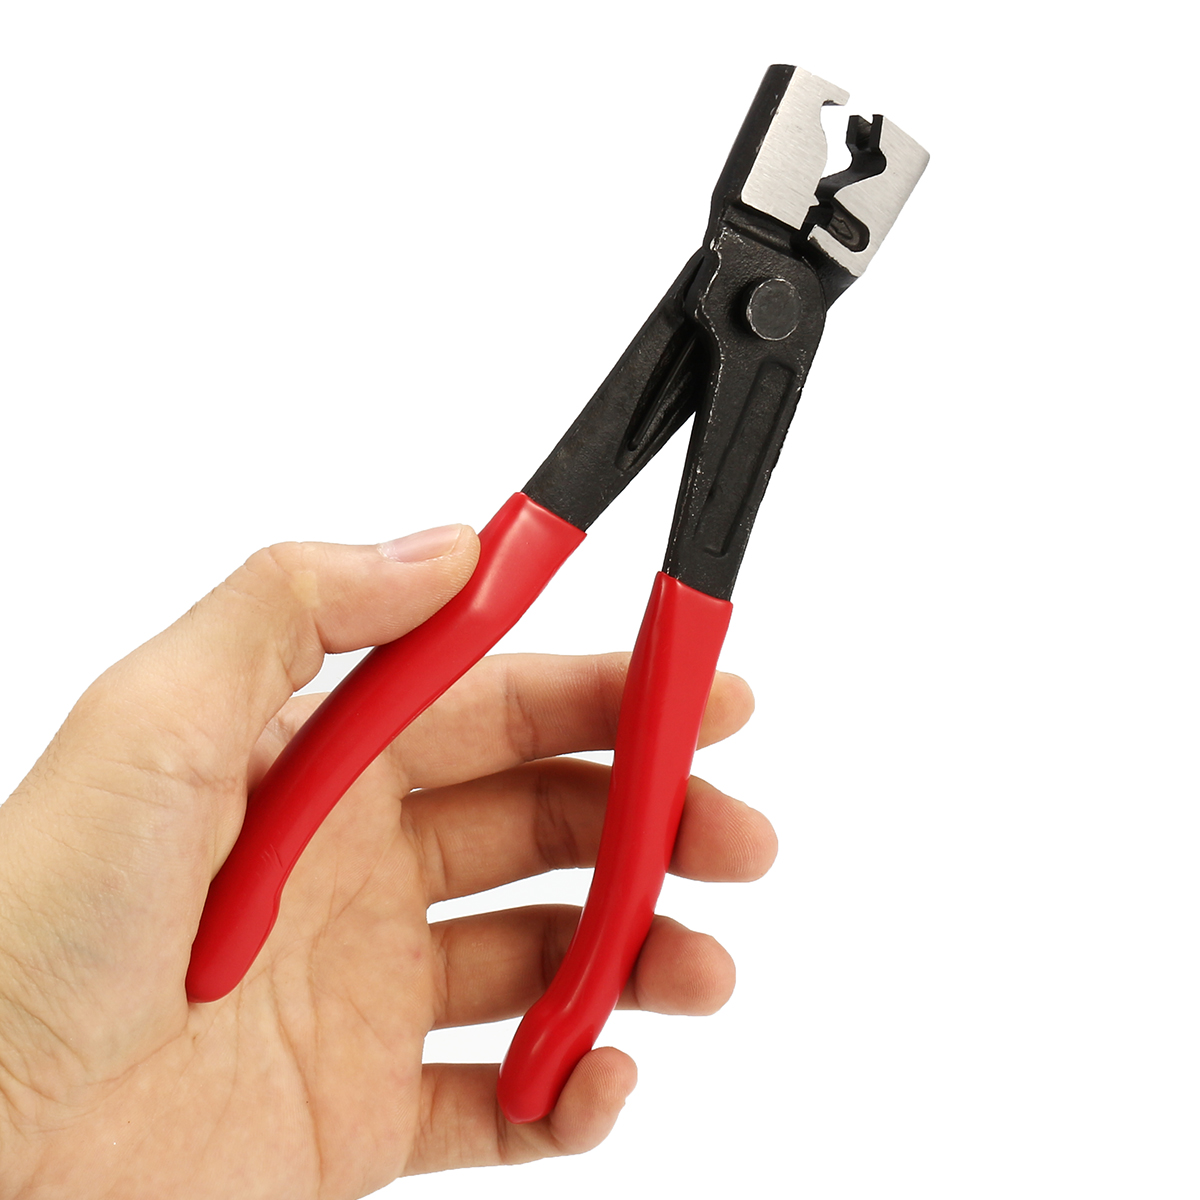 1PC Hose Clip Clamp Pliers Water Pipe Fuel Hose Installer Remover Removal Clamp Calliper Car Repair Hand Tools